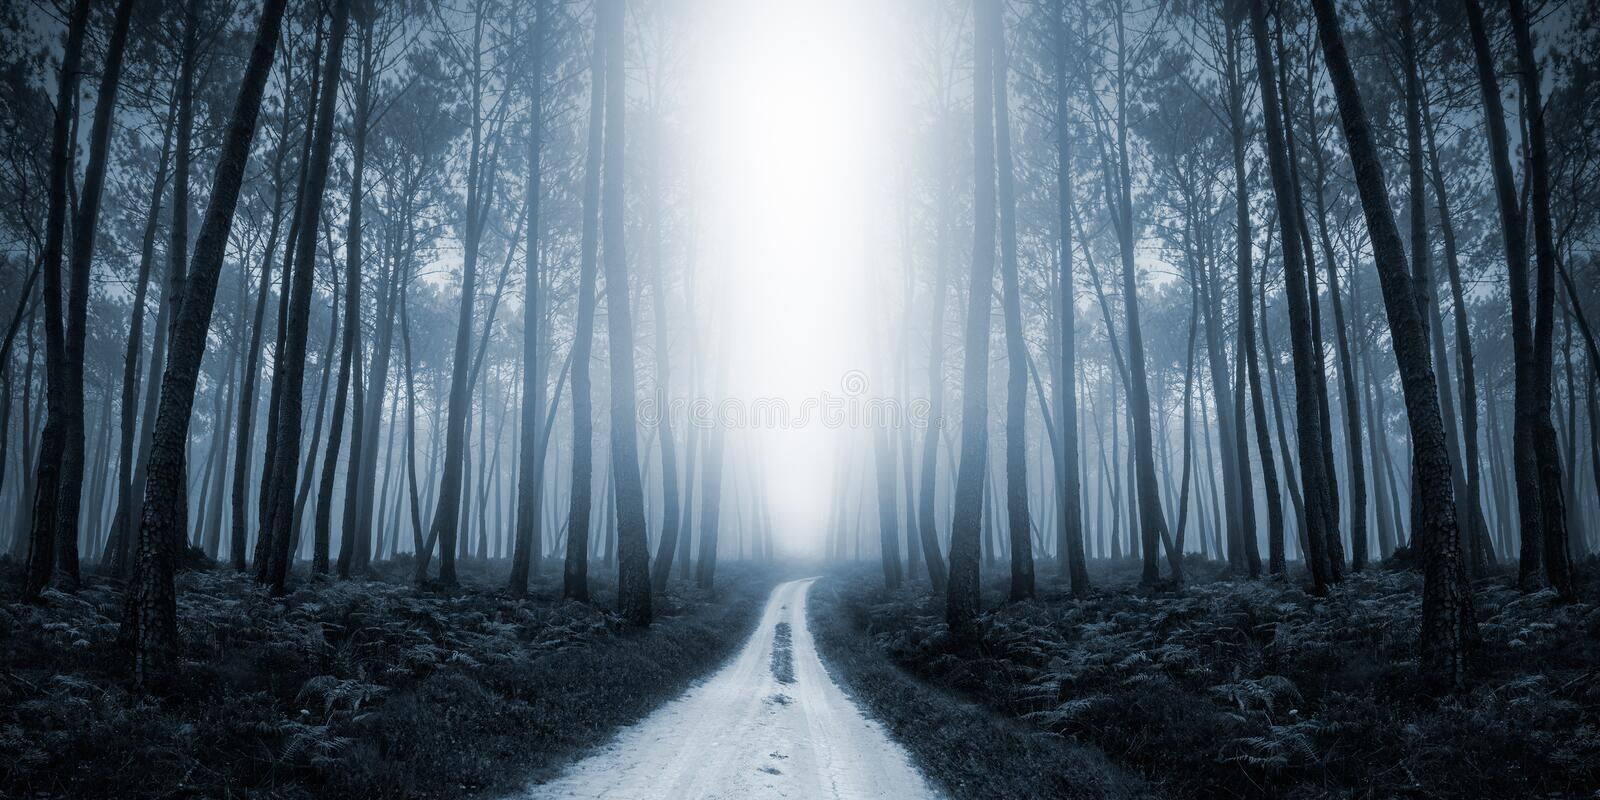 Download Scary Misty Road In The Forest Stock Image - Image: 33622633